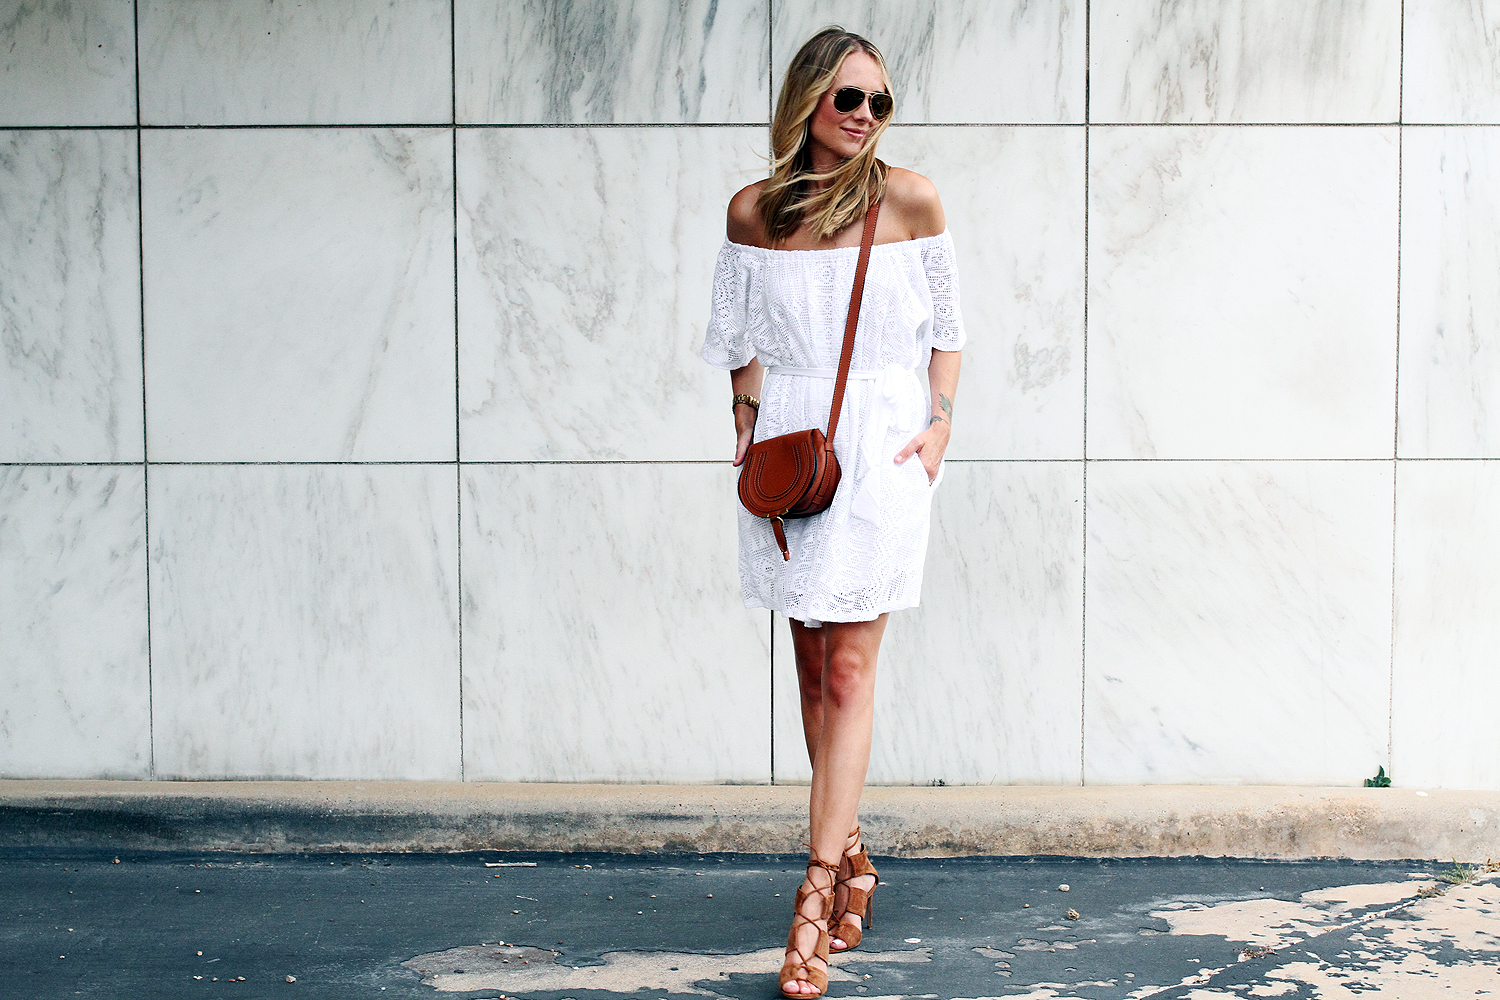 fashion-jackson-banana-republic-white-lace-off-the-shoulder-dress-zara-tan-lace-up-heels-chloe-tan-marcie-crossbody